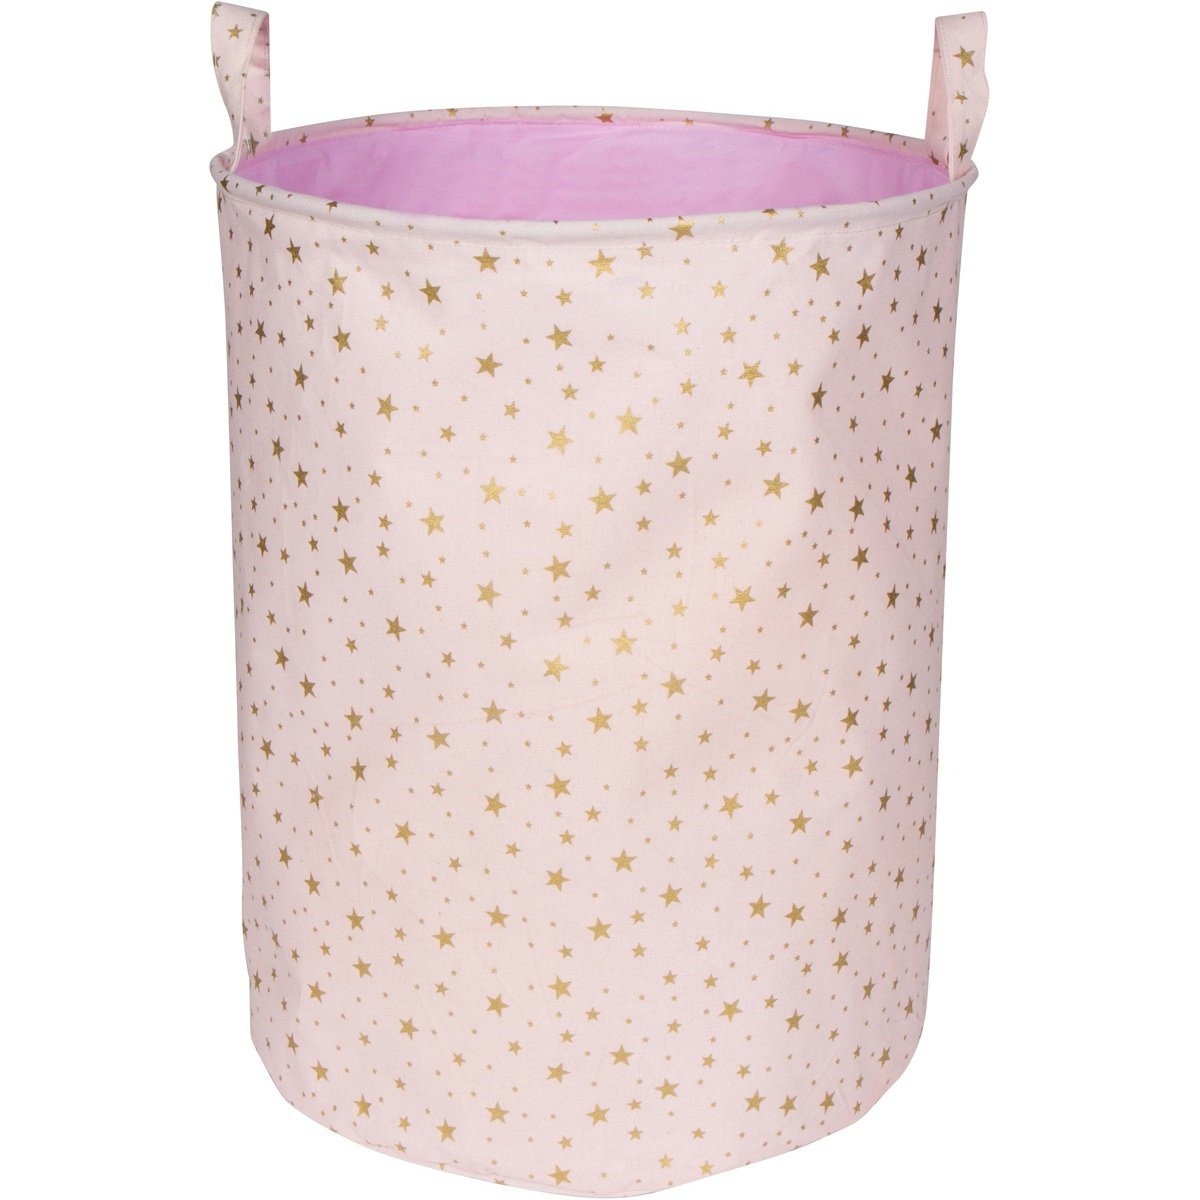 LuxCoco Blush Pink Storage Basket/Laundry Hamper with Shimmery Gold Star Pattern | 19.6 Large Waterproof Collapsible Cotton Canvas Bin with Handles | Baby Kids Nursery Toy Clothes Book Organizer goldstar